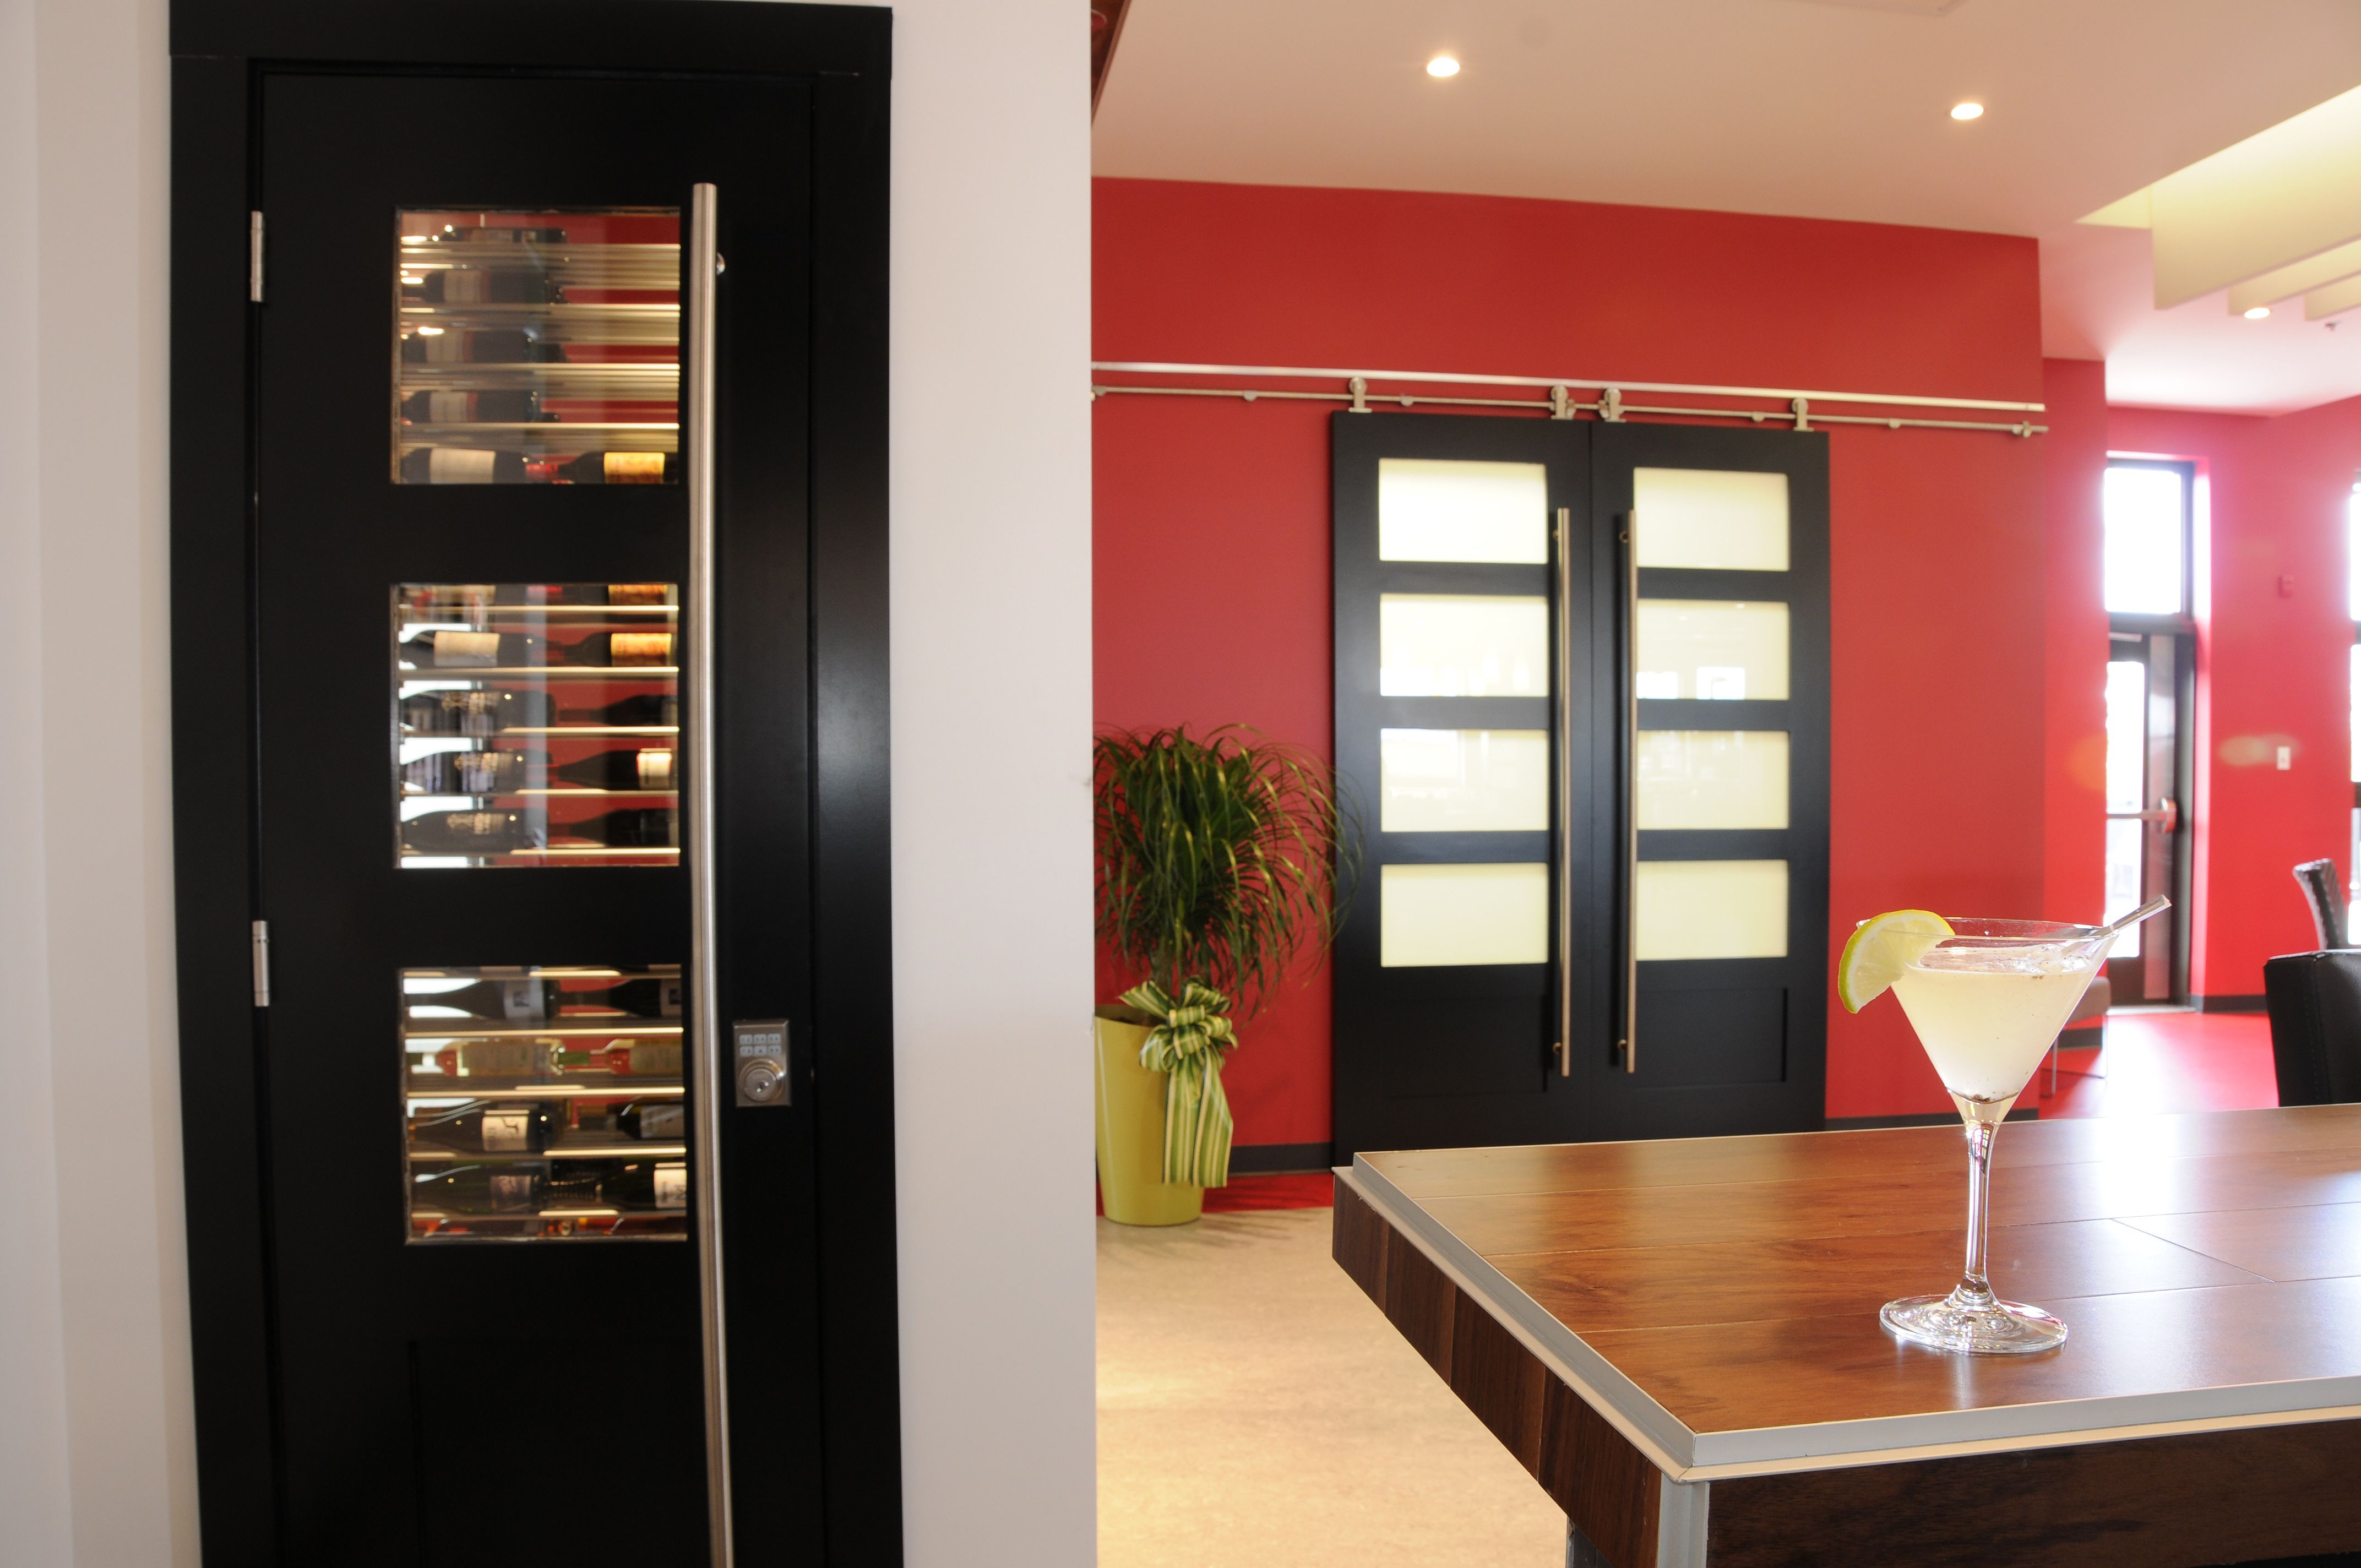 Custom Ordered Interior Shaker French Door With Bottom Panel Commercial Application With 1 3 4 Thickness Frenchdoor Wine Room Shaker Doors Beautiful Doors